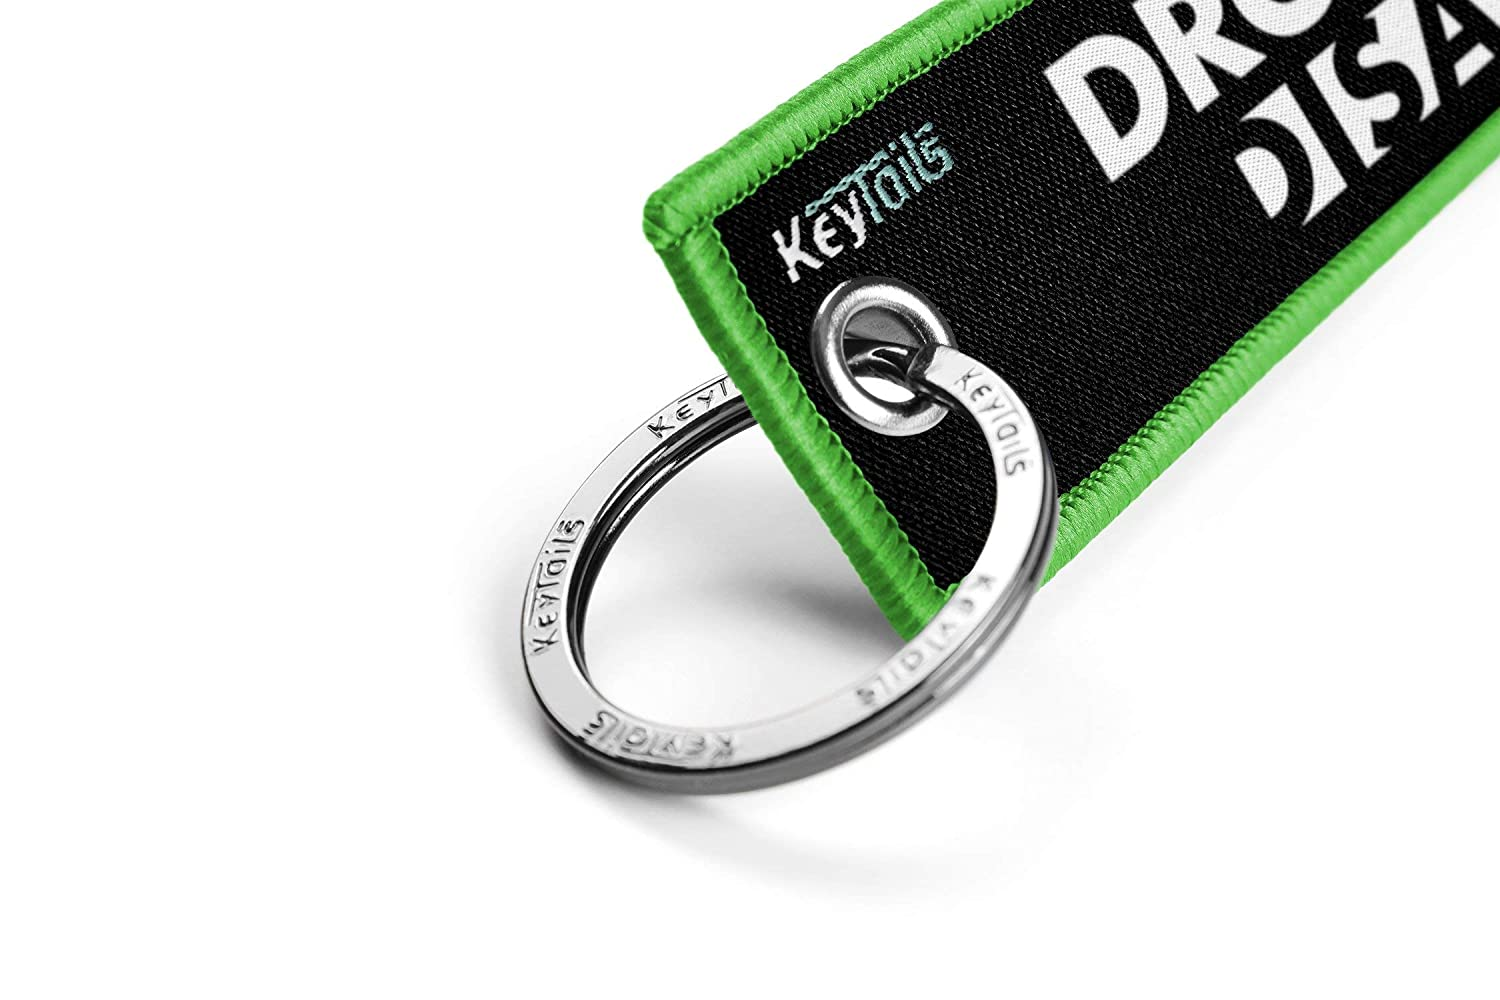 KEYTAILS Keychains Premium Quality Key Tag for Motorcycle Scooter Built Not Bought UTV ATV Car